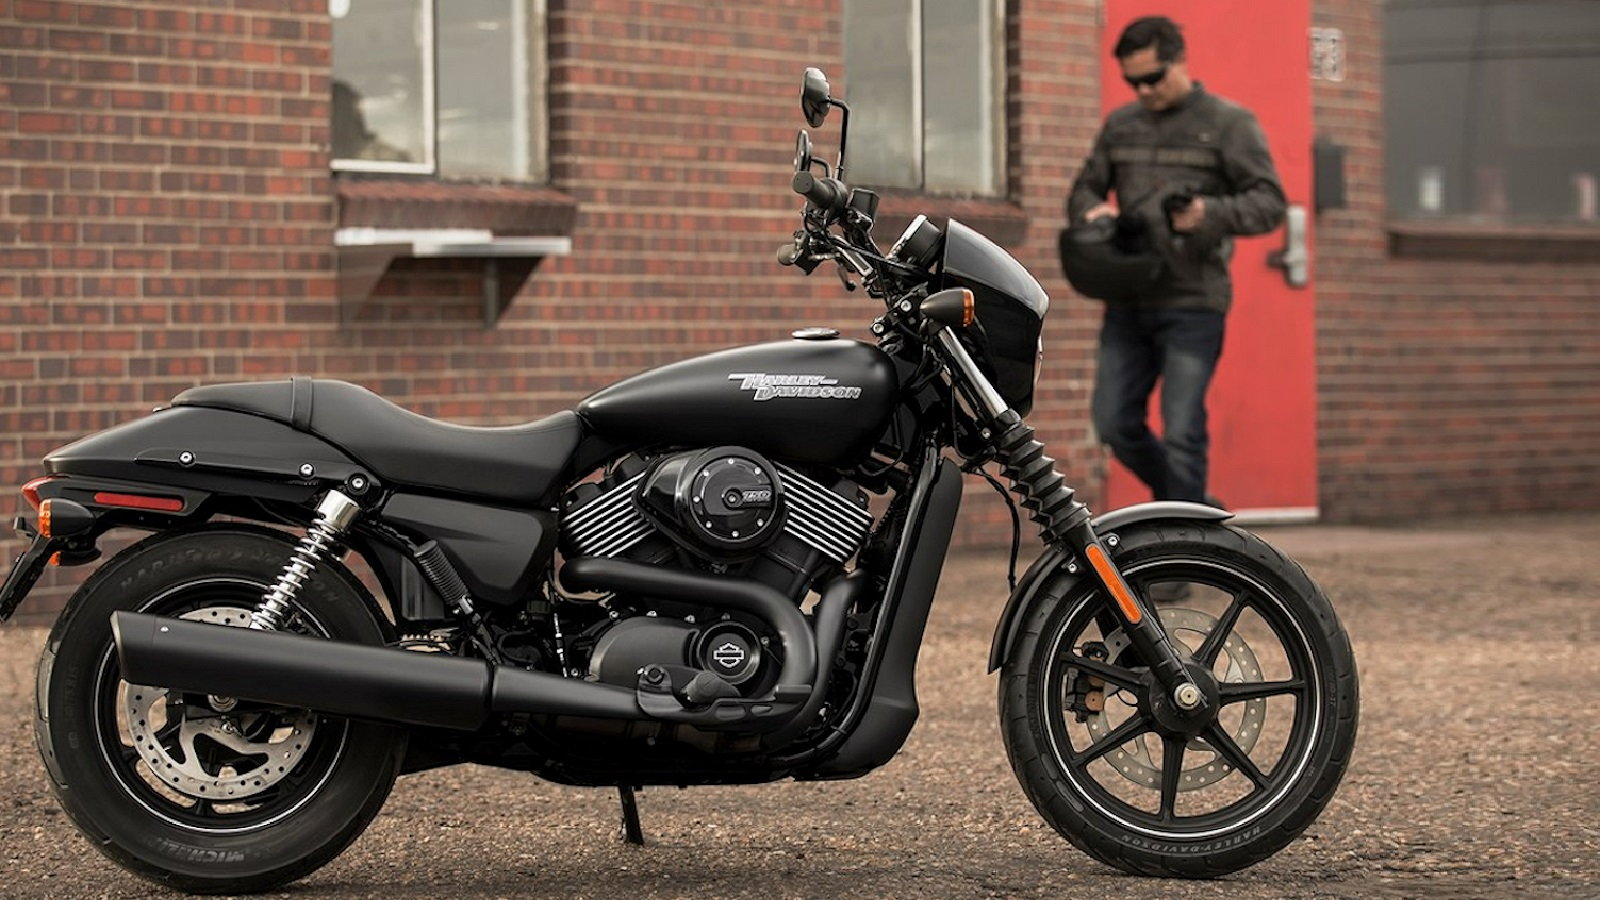 Does H-D Do a Good Job at the $8,000 Level?